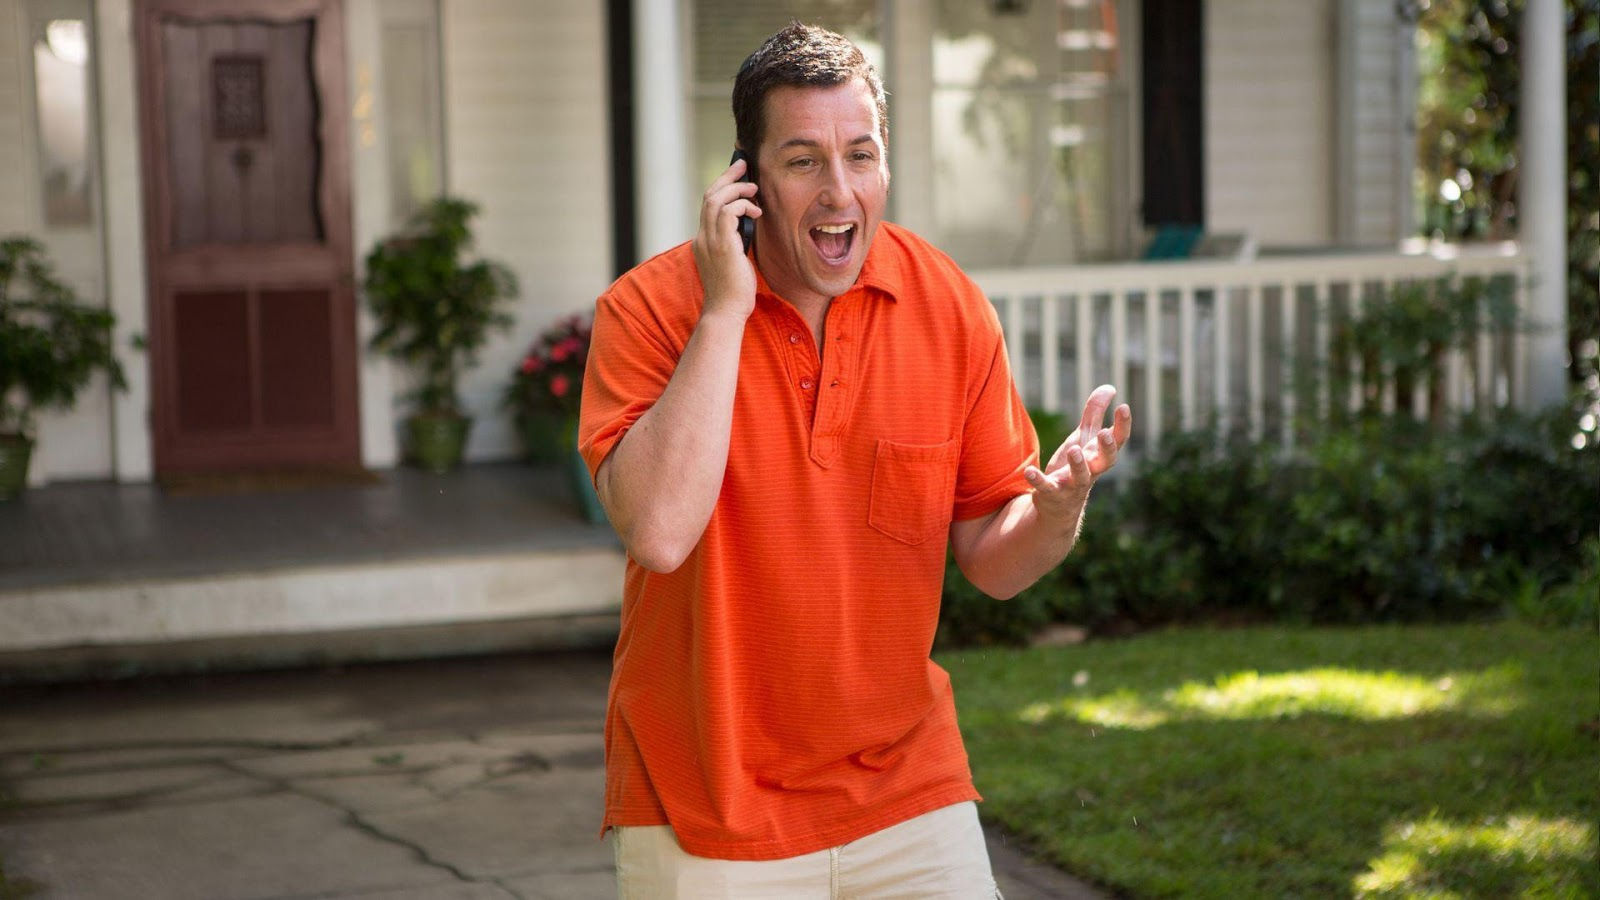 Magnificent Adam Sandler Image